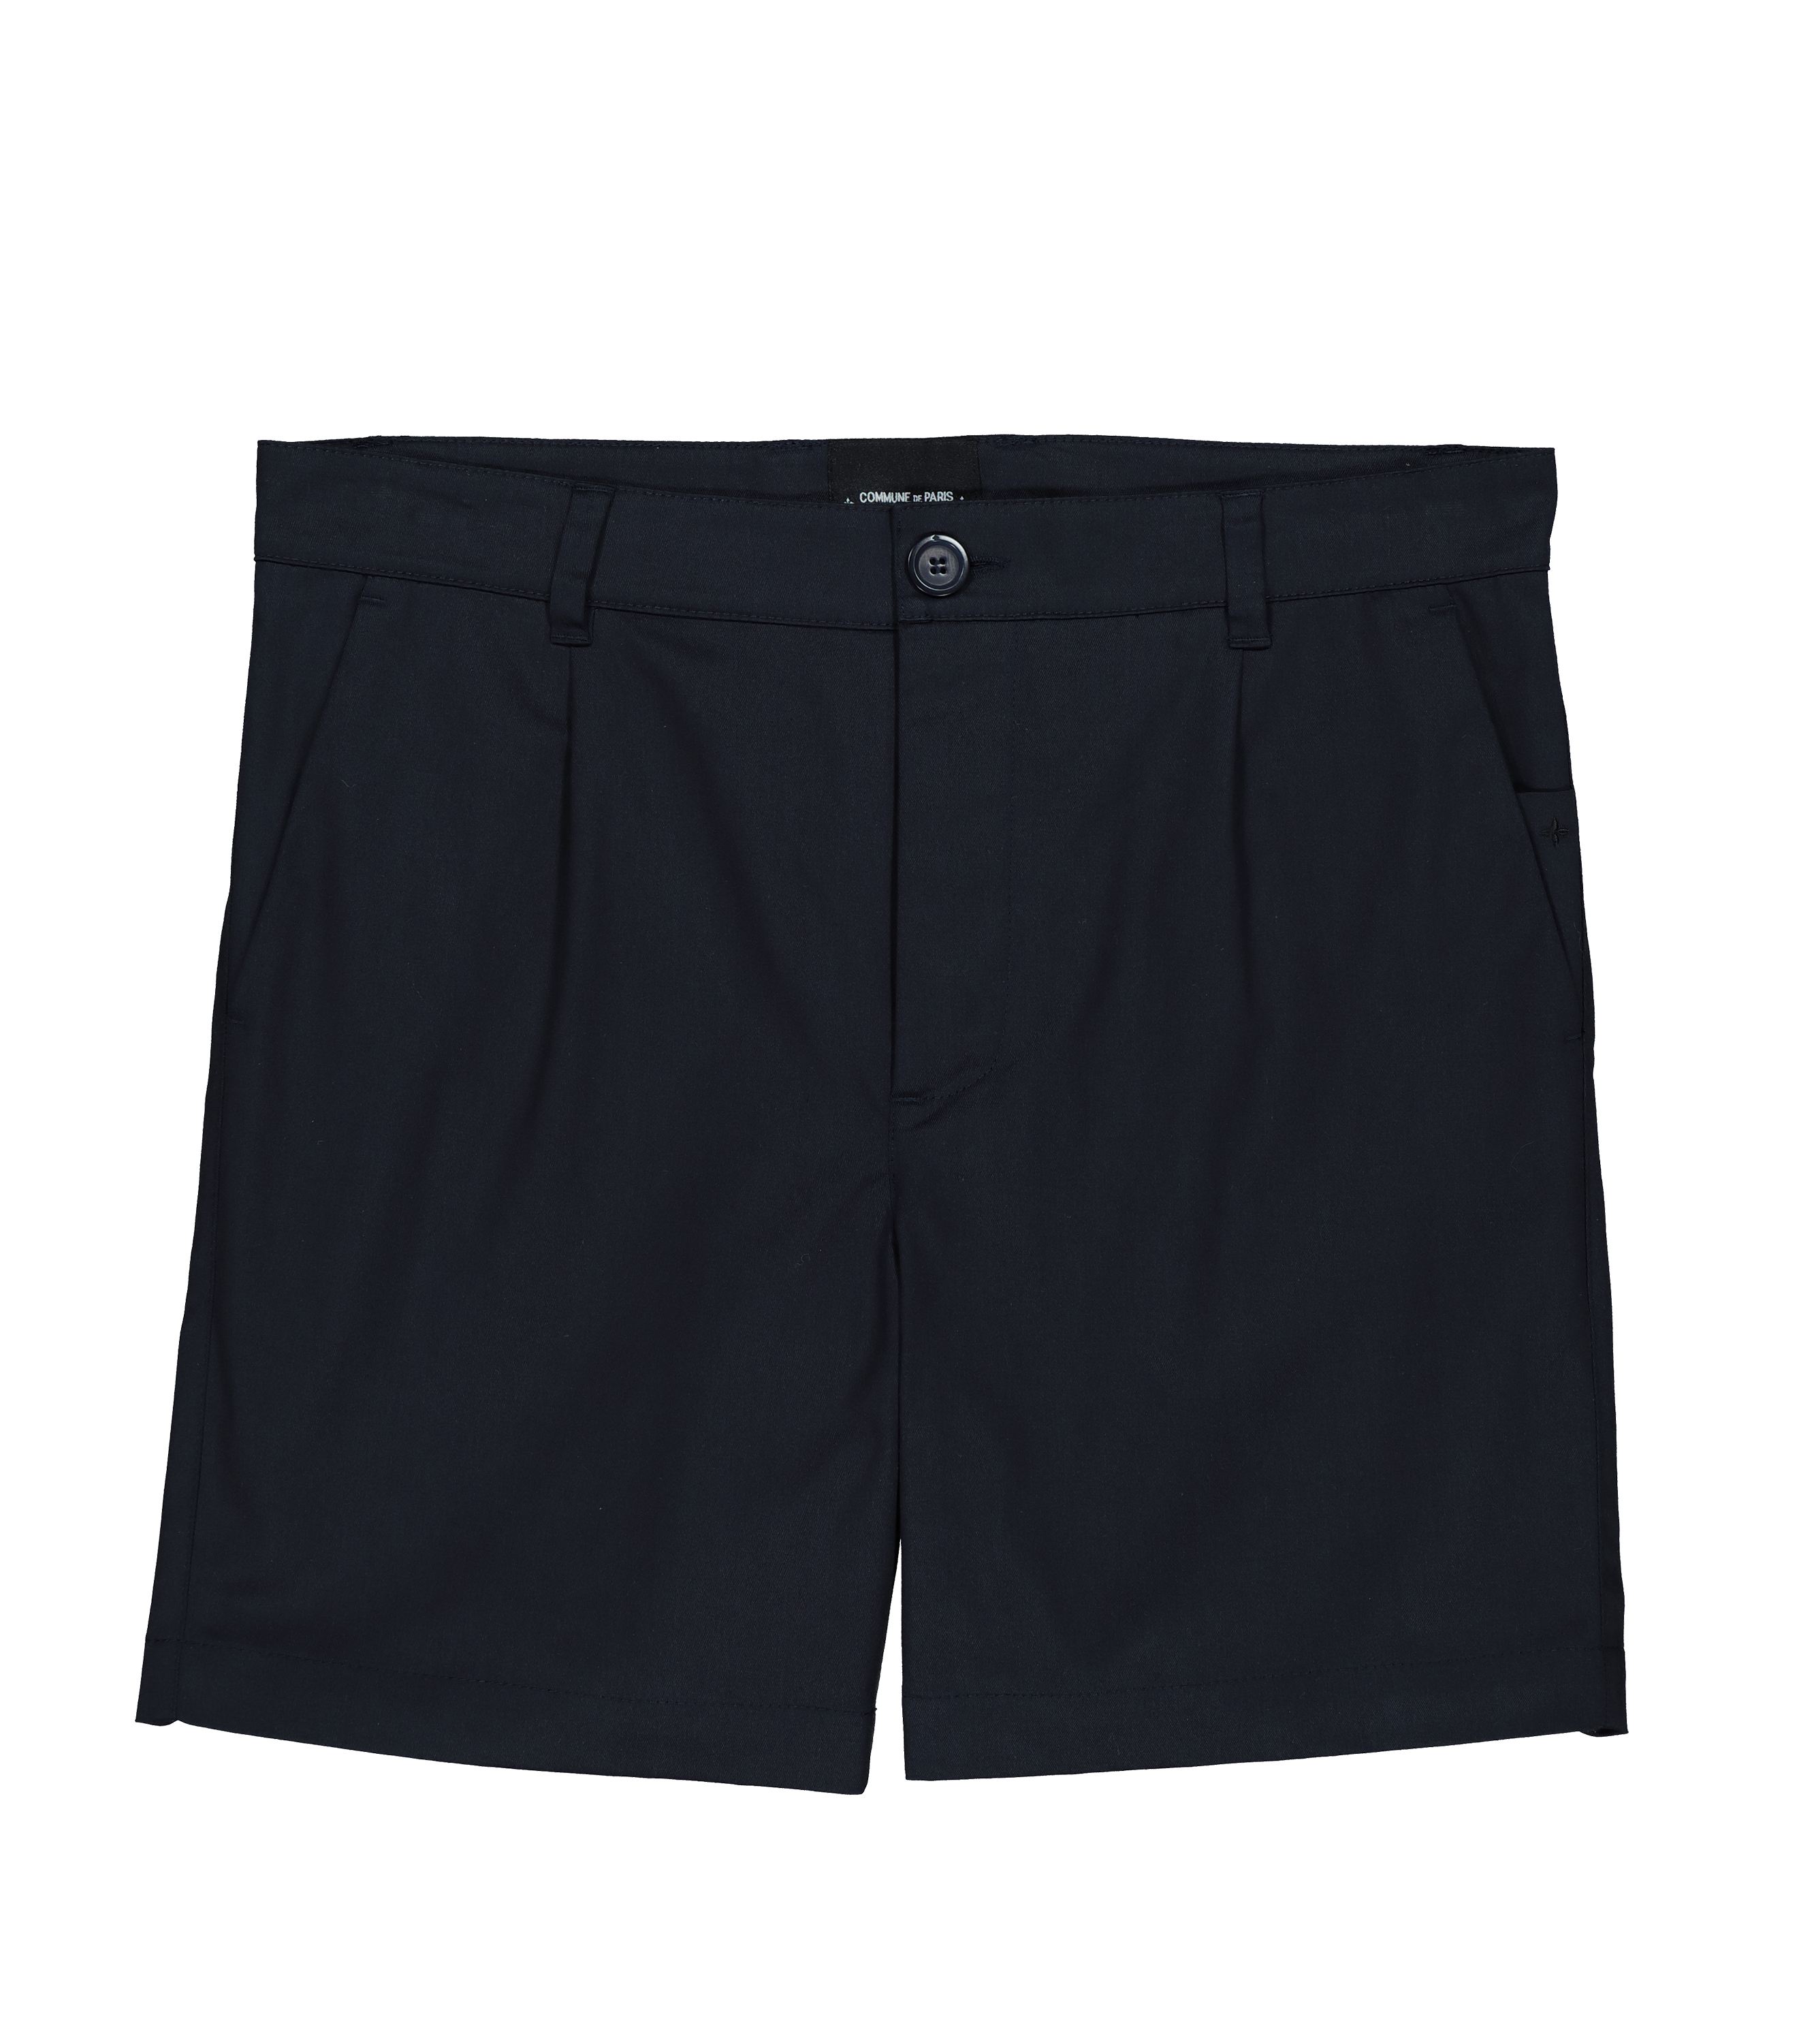 SHORTS SP5 - Marine